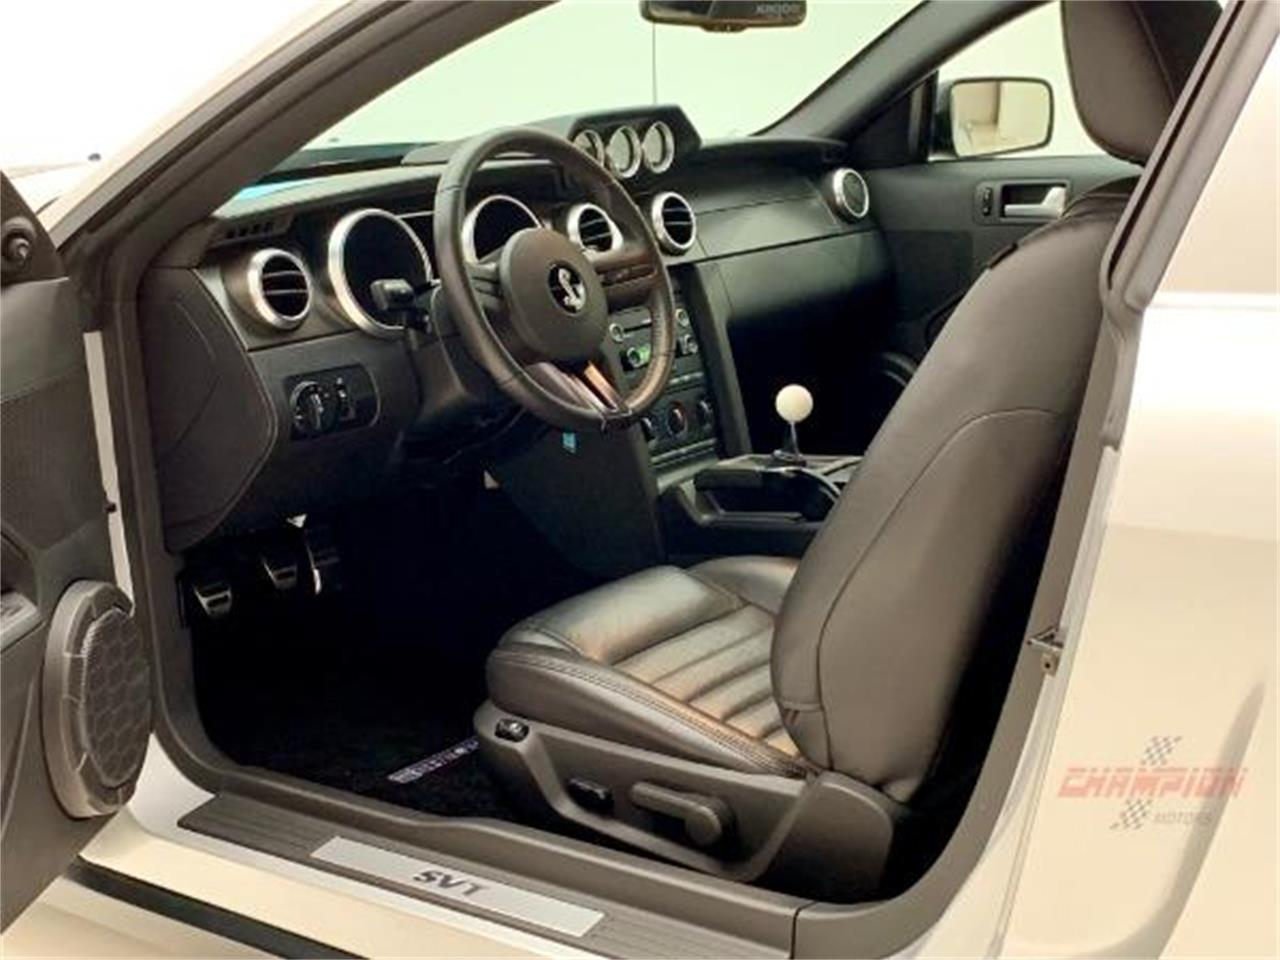 2009 Shelby Mustang for sale in Syosset, NY – photo 14